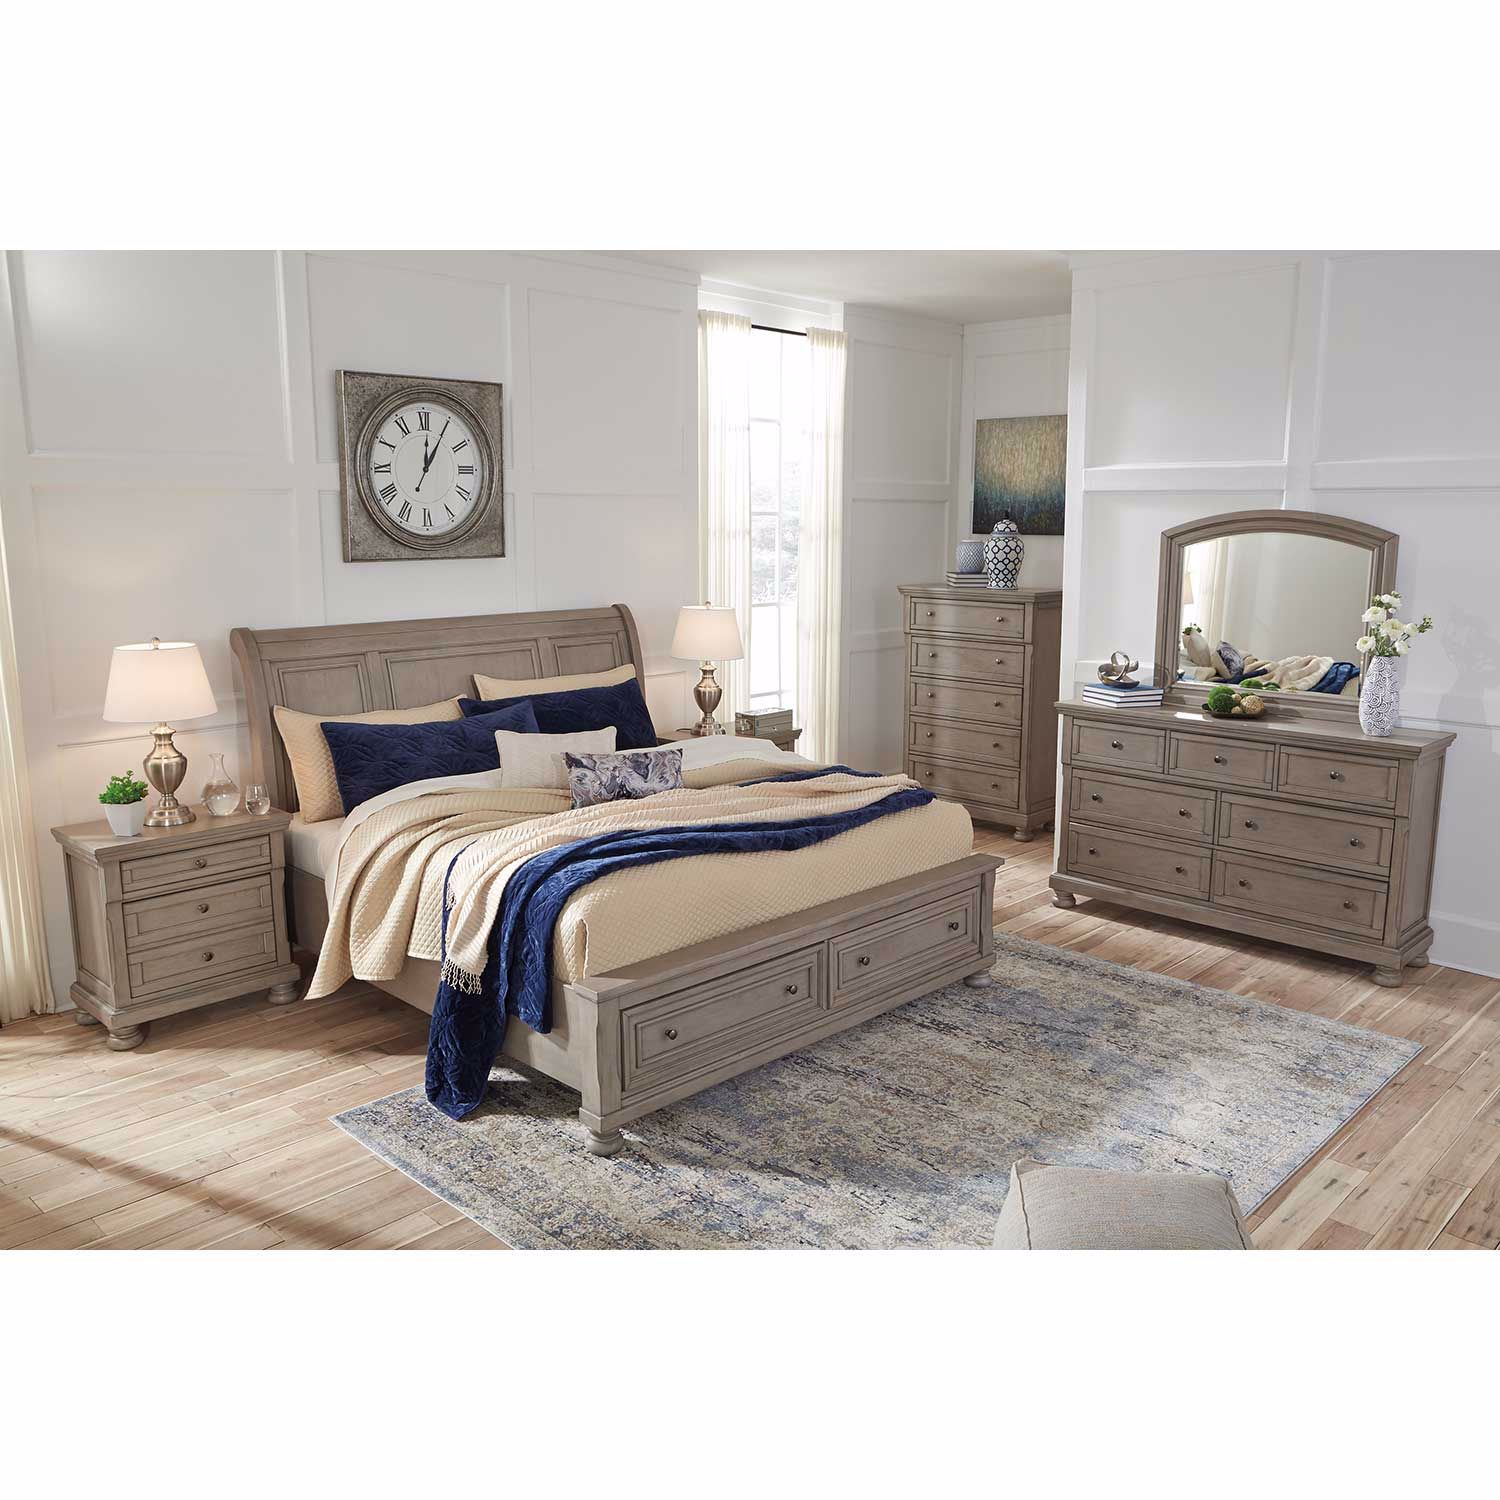 Picture of Lettner 2 Drawer Nightstand